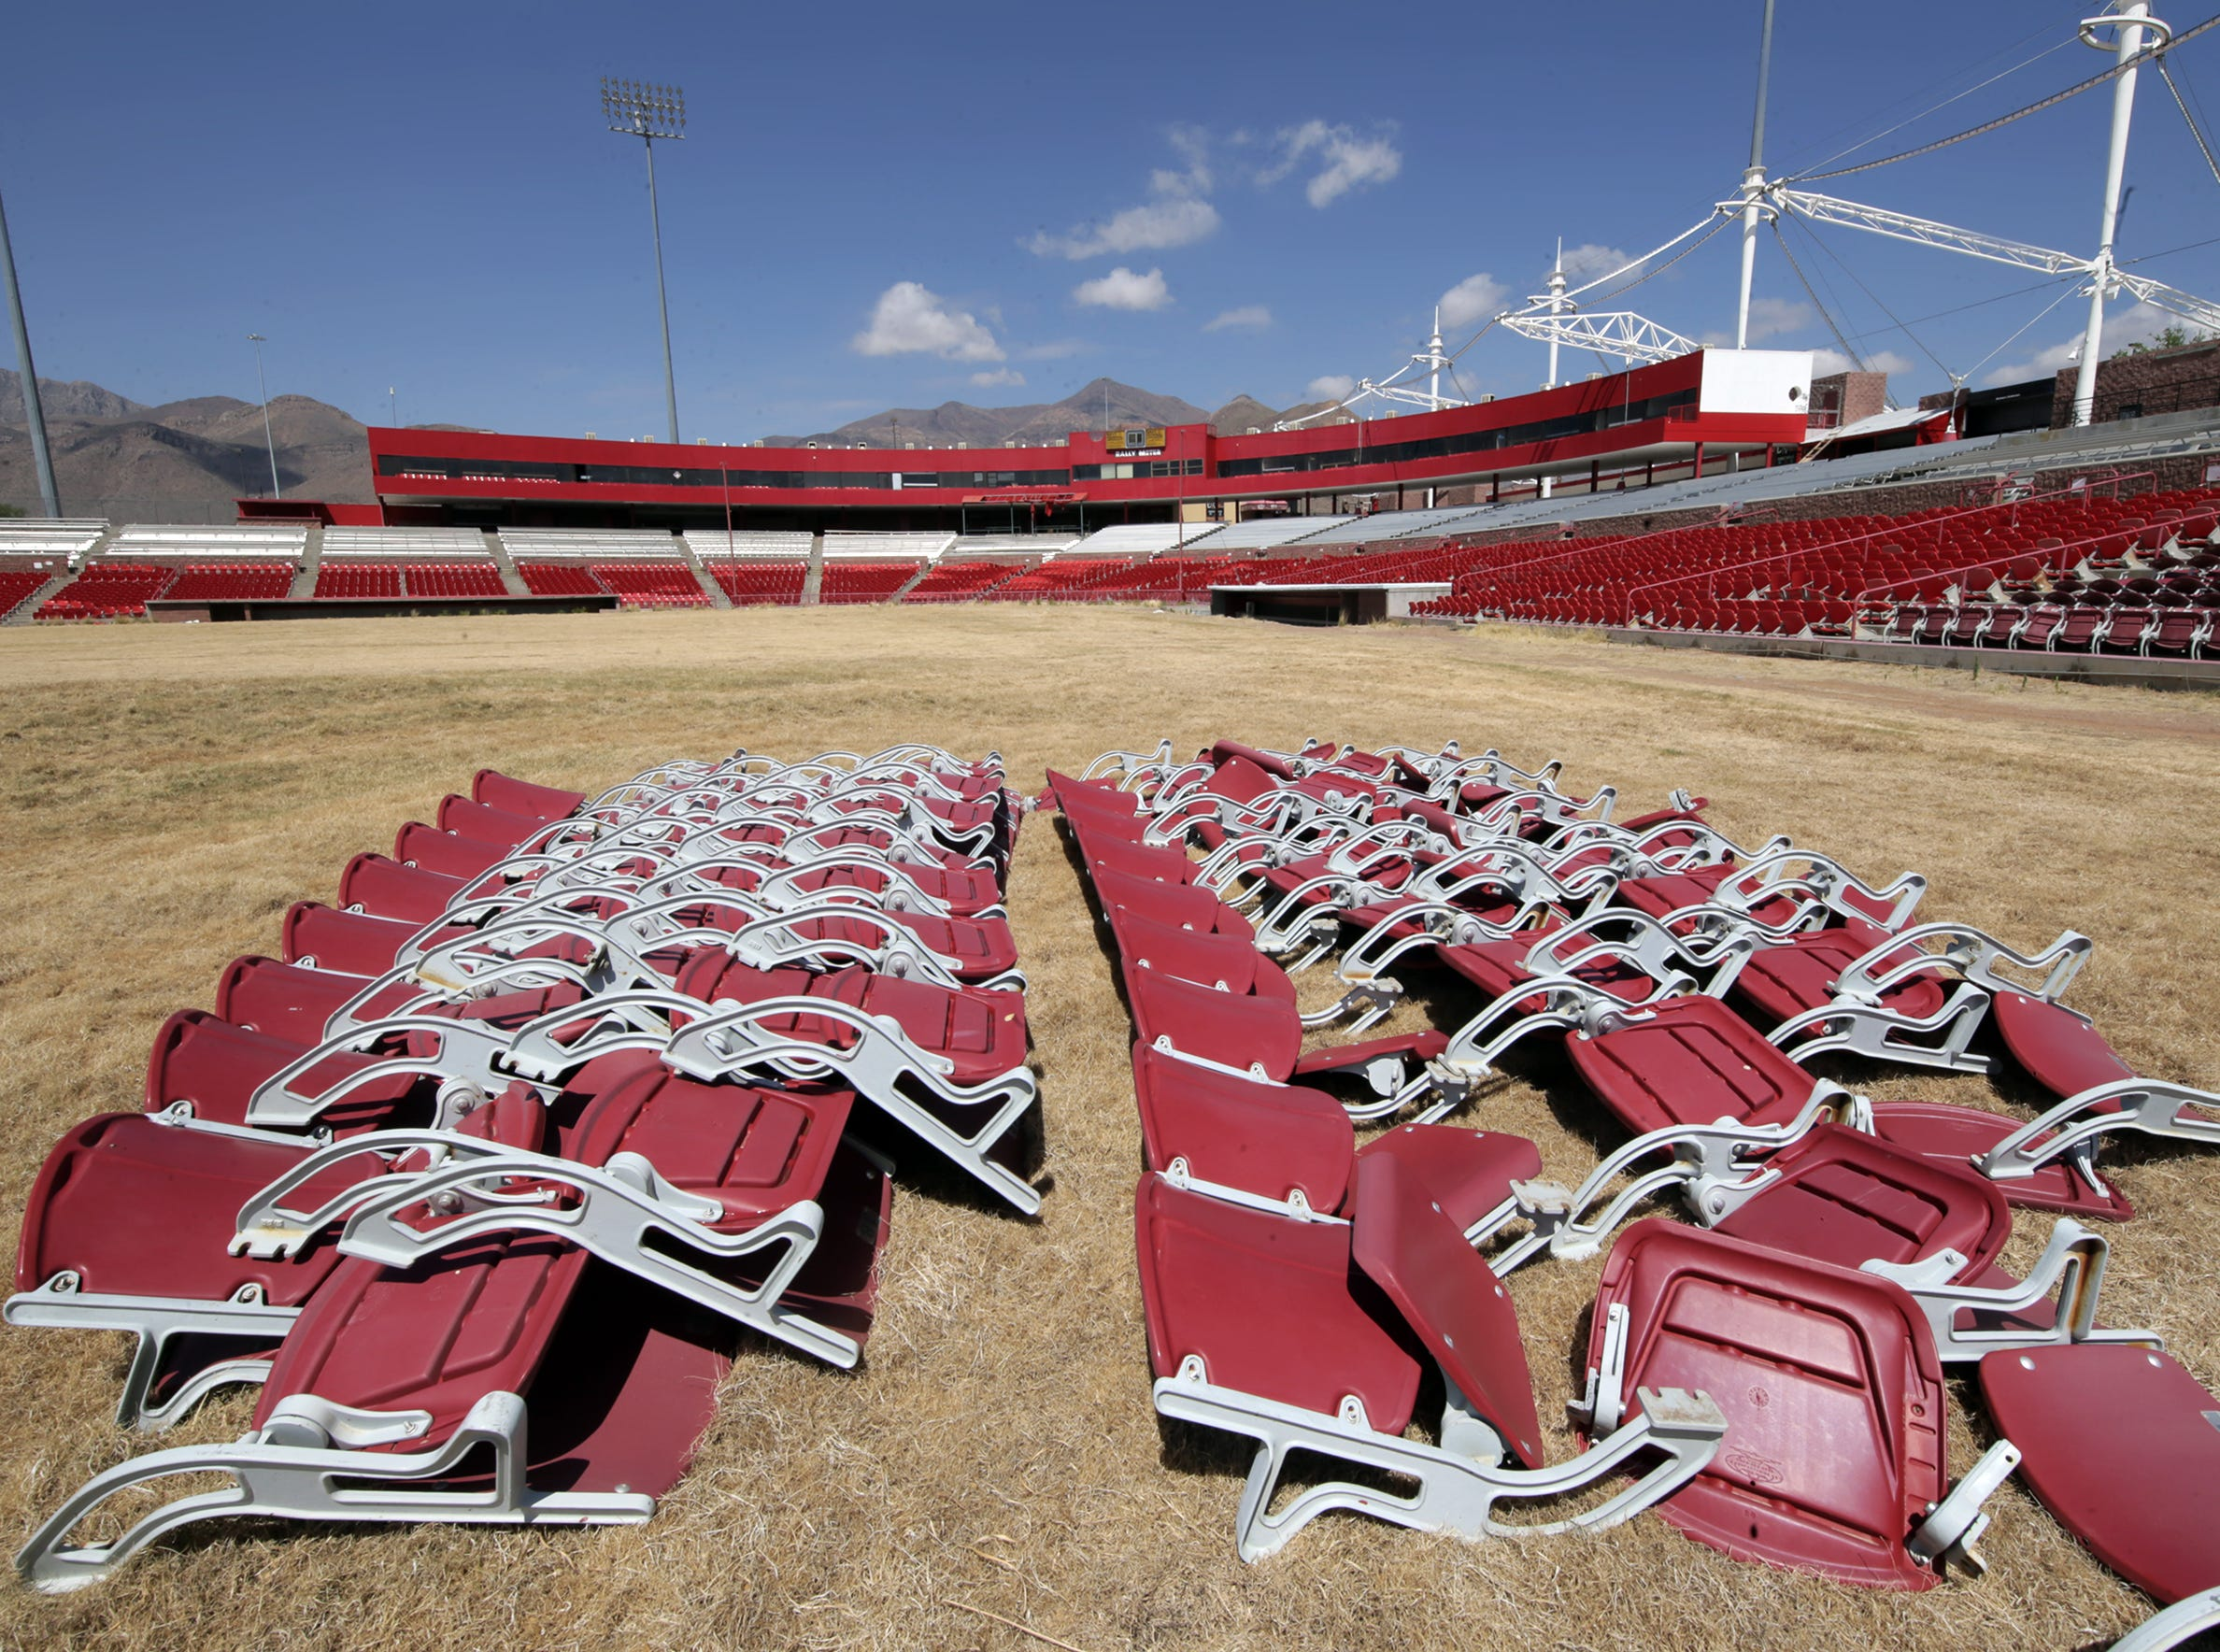 The City of El Paso held Selfie Day at Cohen Stadium Saturday to give El Pasoans a chance to say goodbye to the former home of the El Paso Diablos. 25-cent hot dogs were served at the event harkening back to the Diablo dog days.